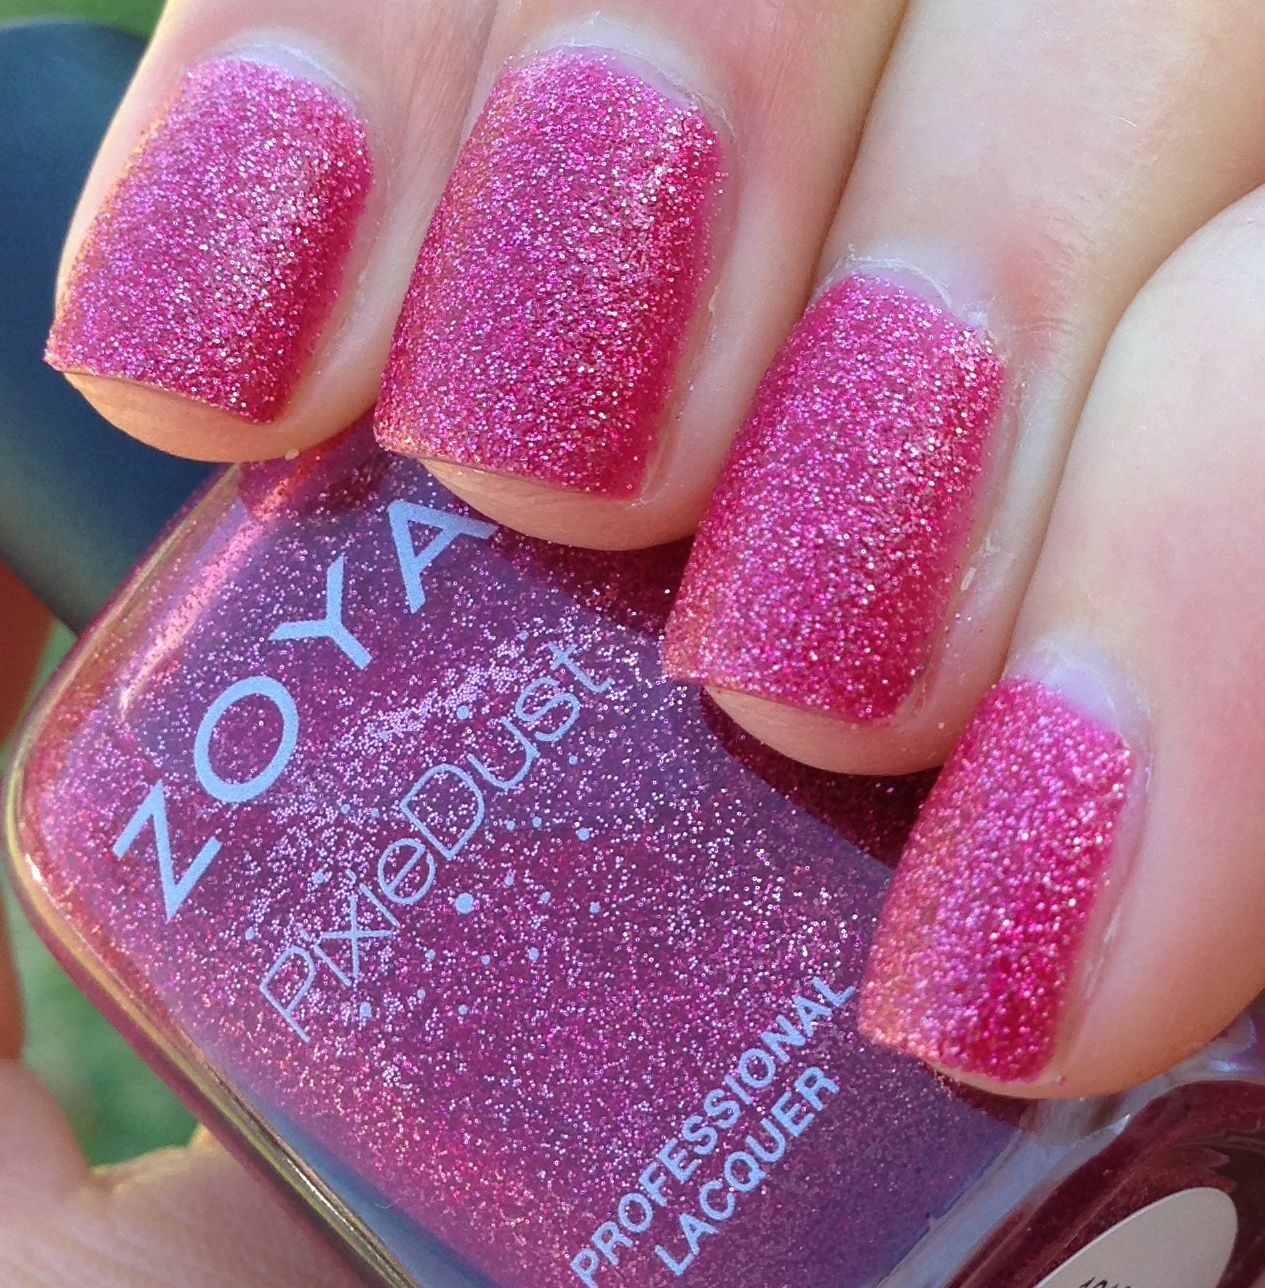 Swatch & Review: Zoya PixieDust Collection for Fall 2013